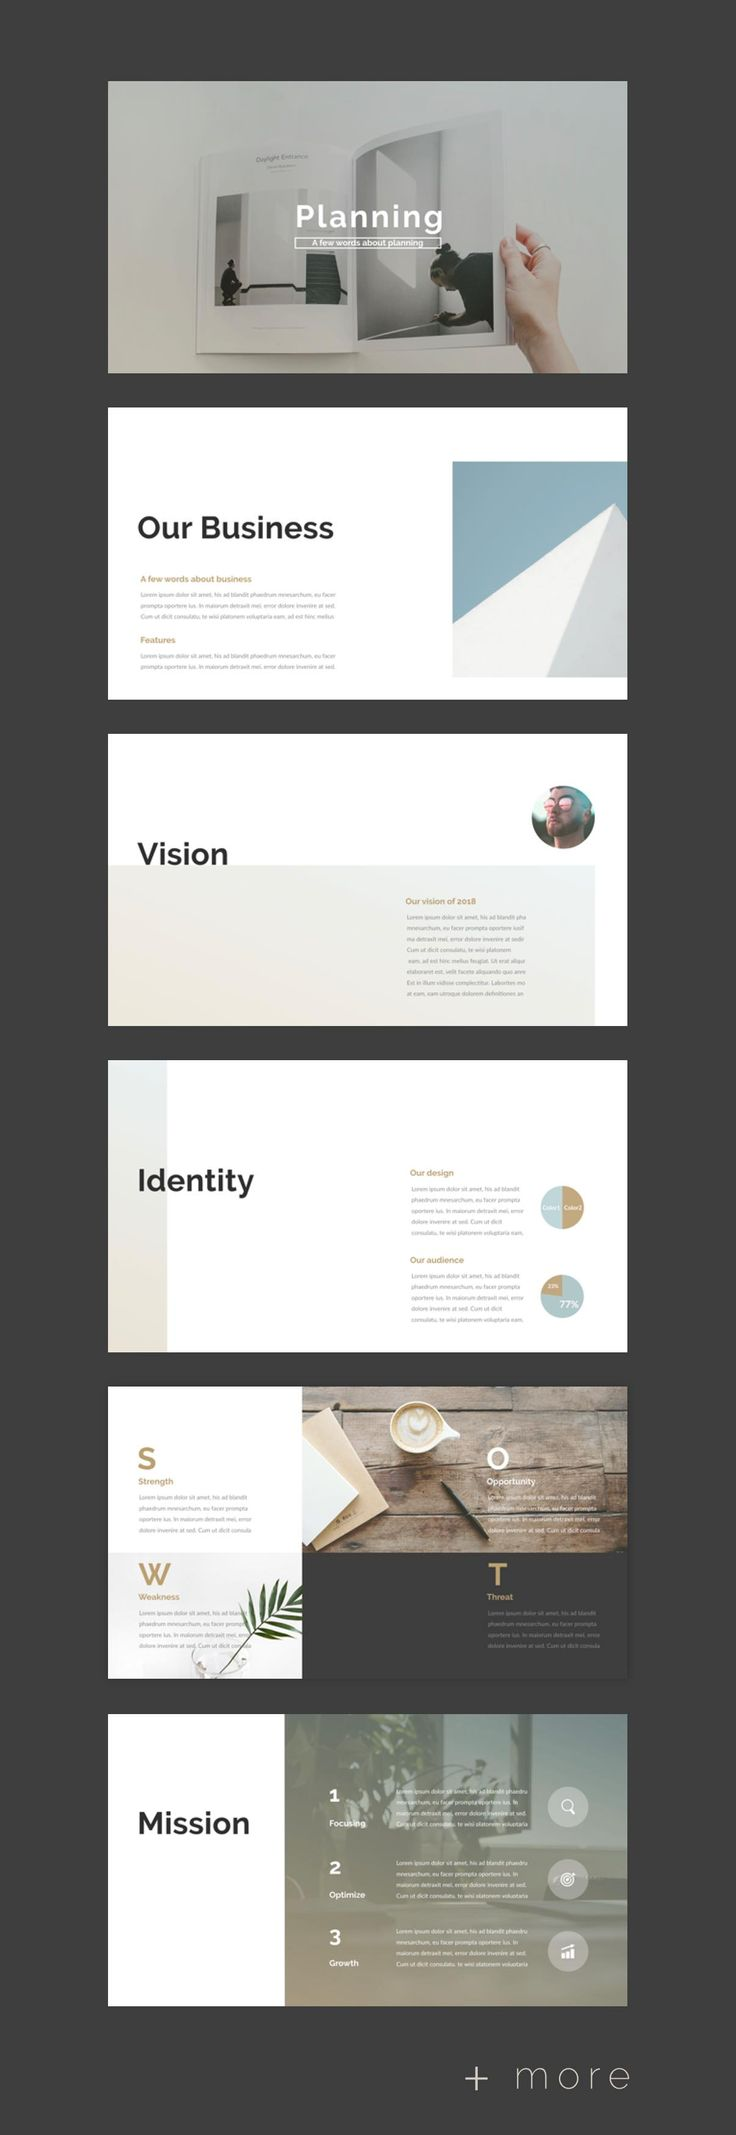 Simple Planner Presentation Template #presentation #business